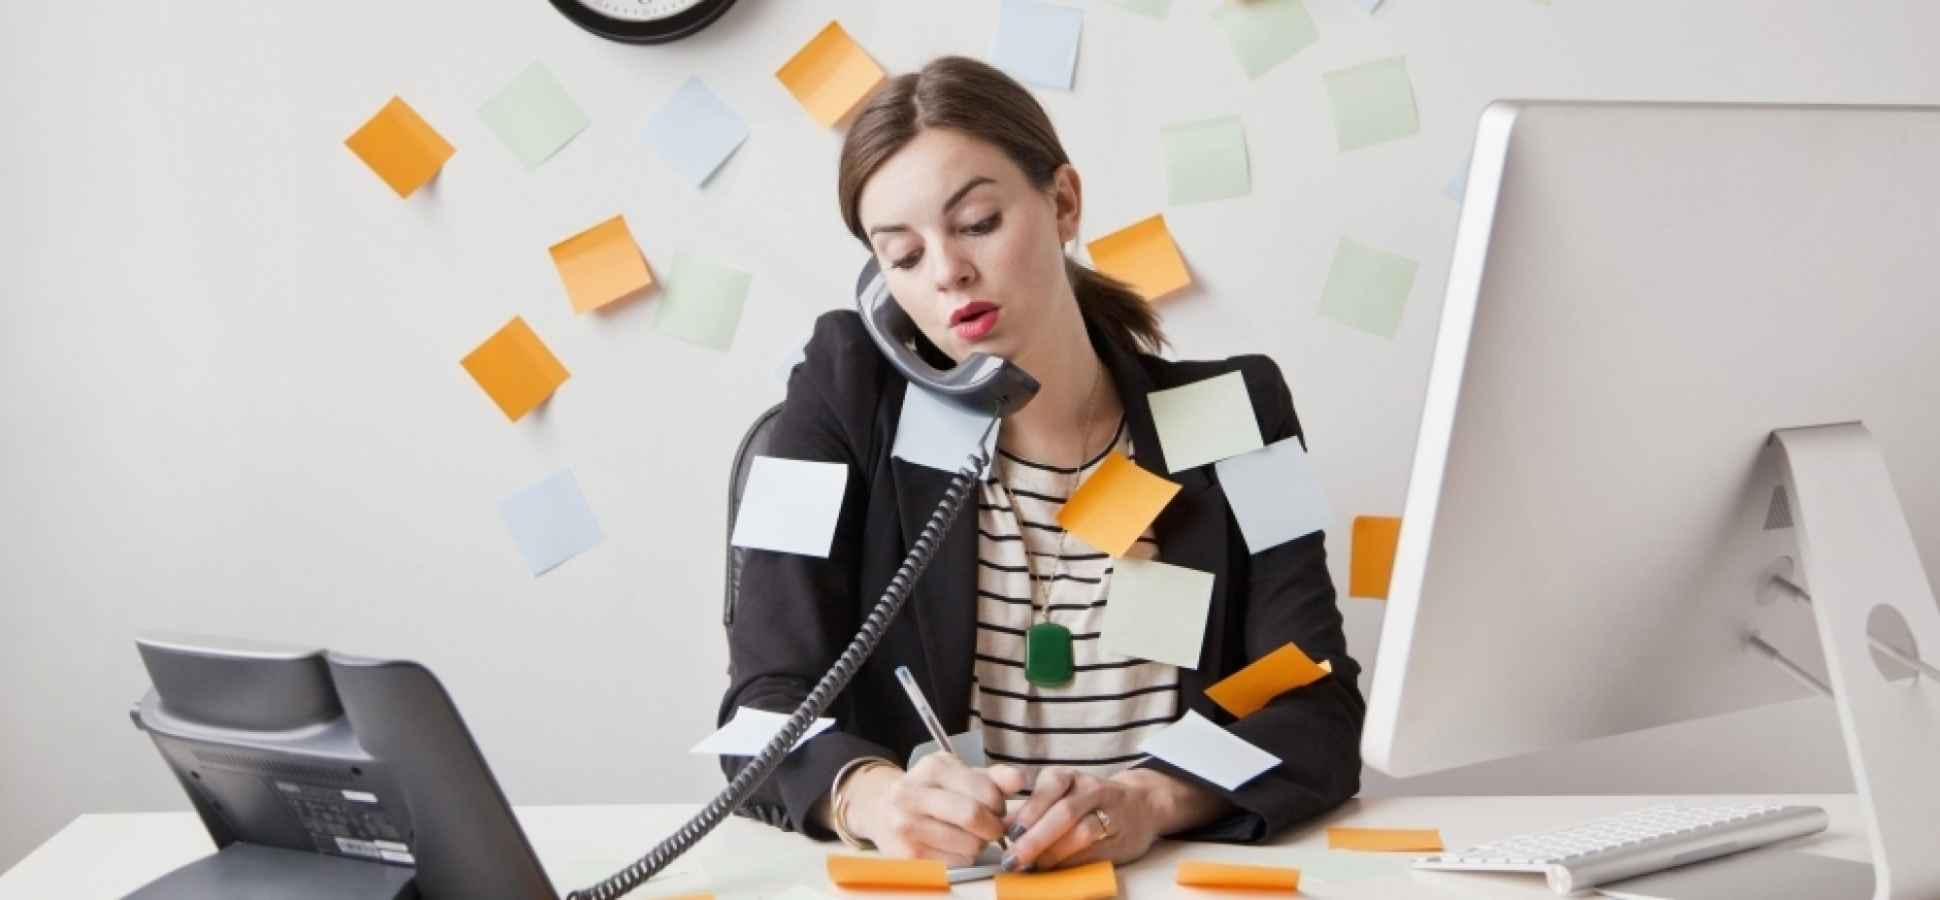 How to Fix Your Worst Work Habits